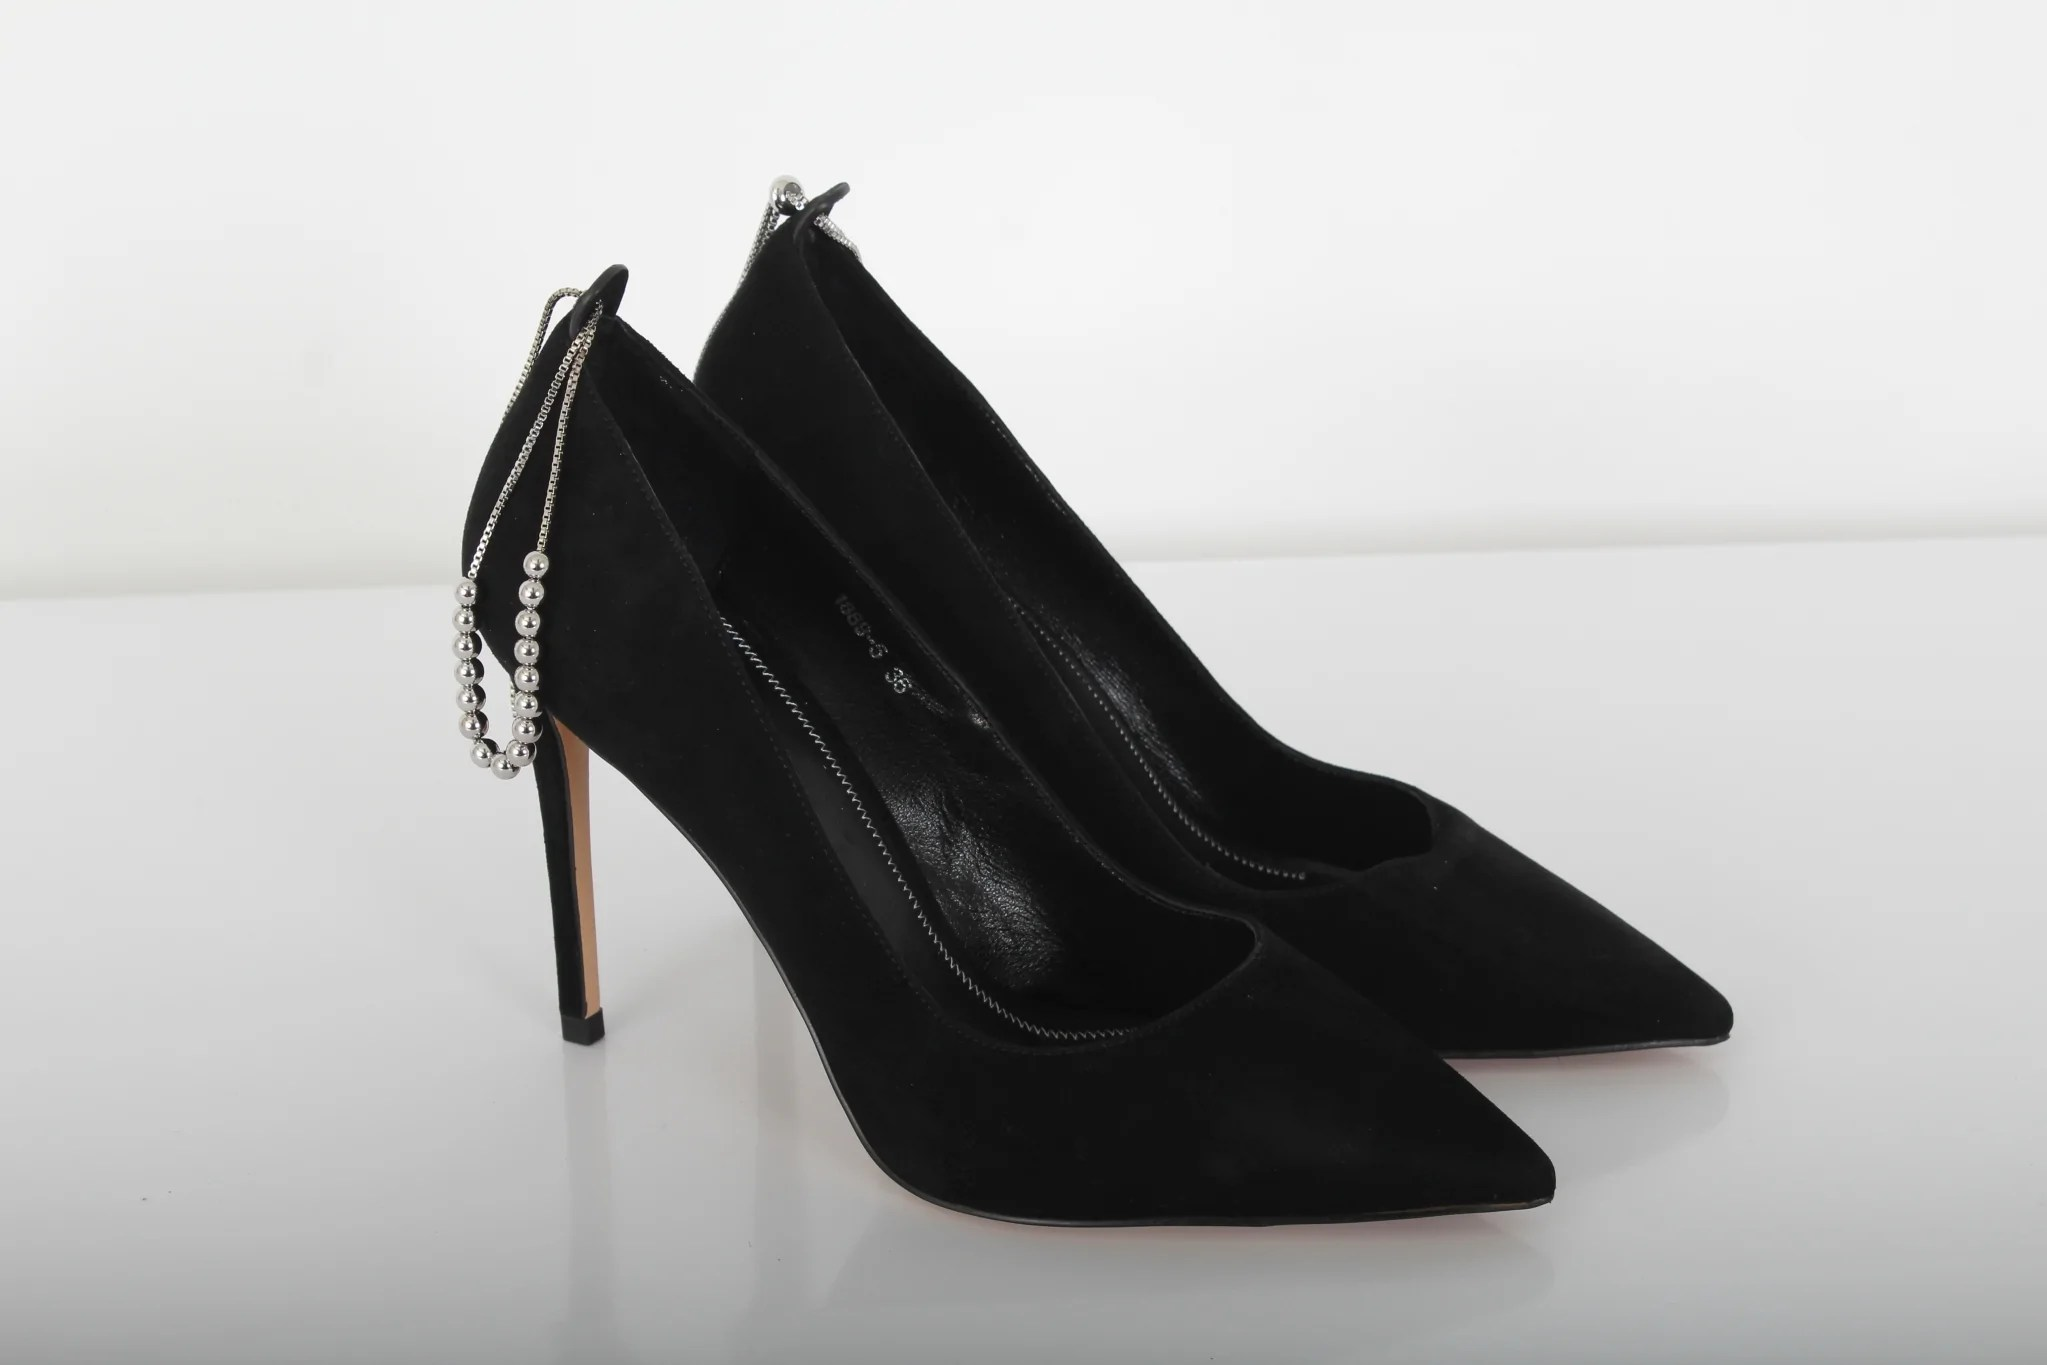 Canape D Canape D Ring Pumps